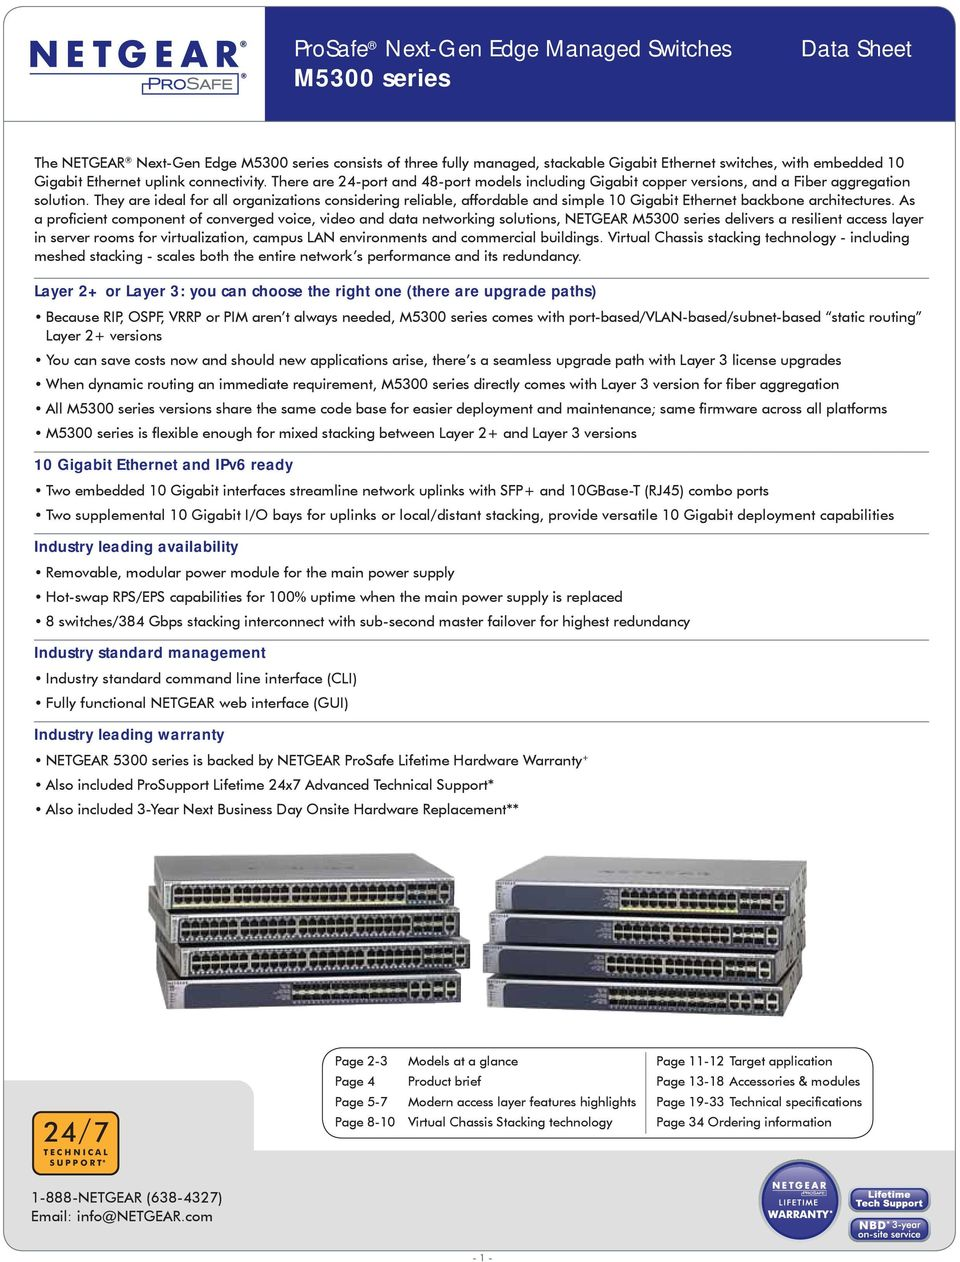 They are ideal for all organizations considering reliable, affordable and simple Gigabit Ethernet backbone architectures.